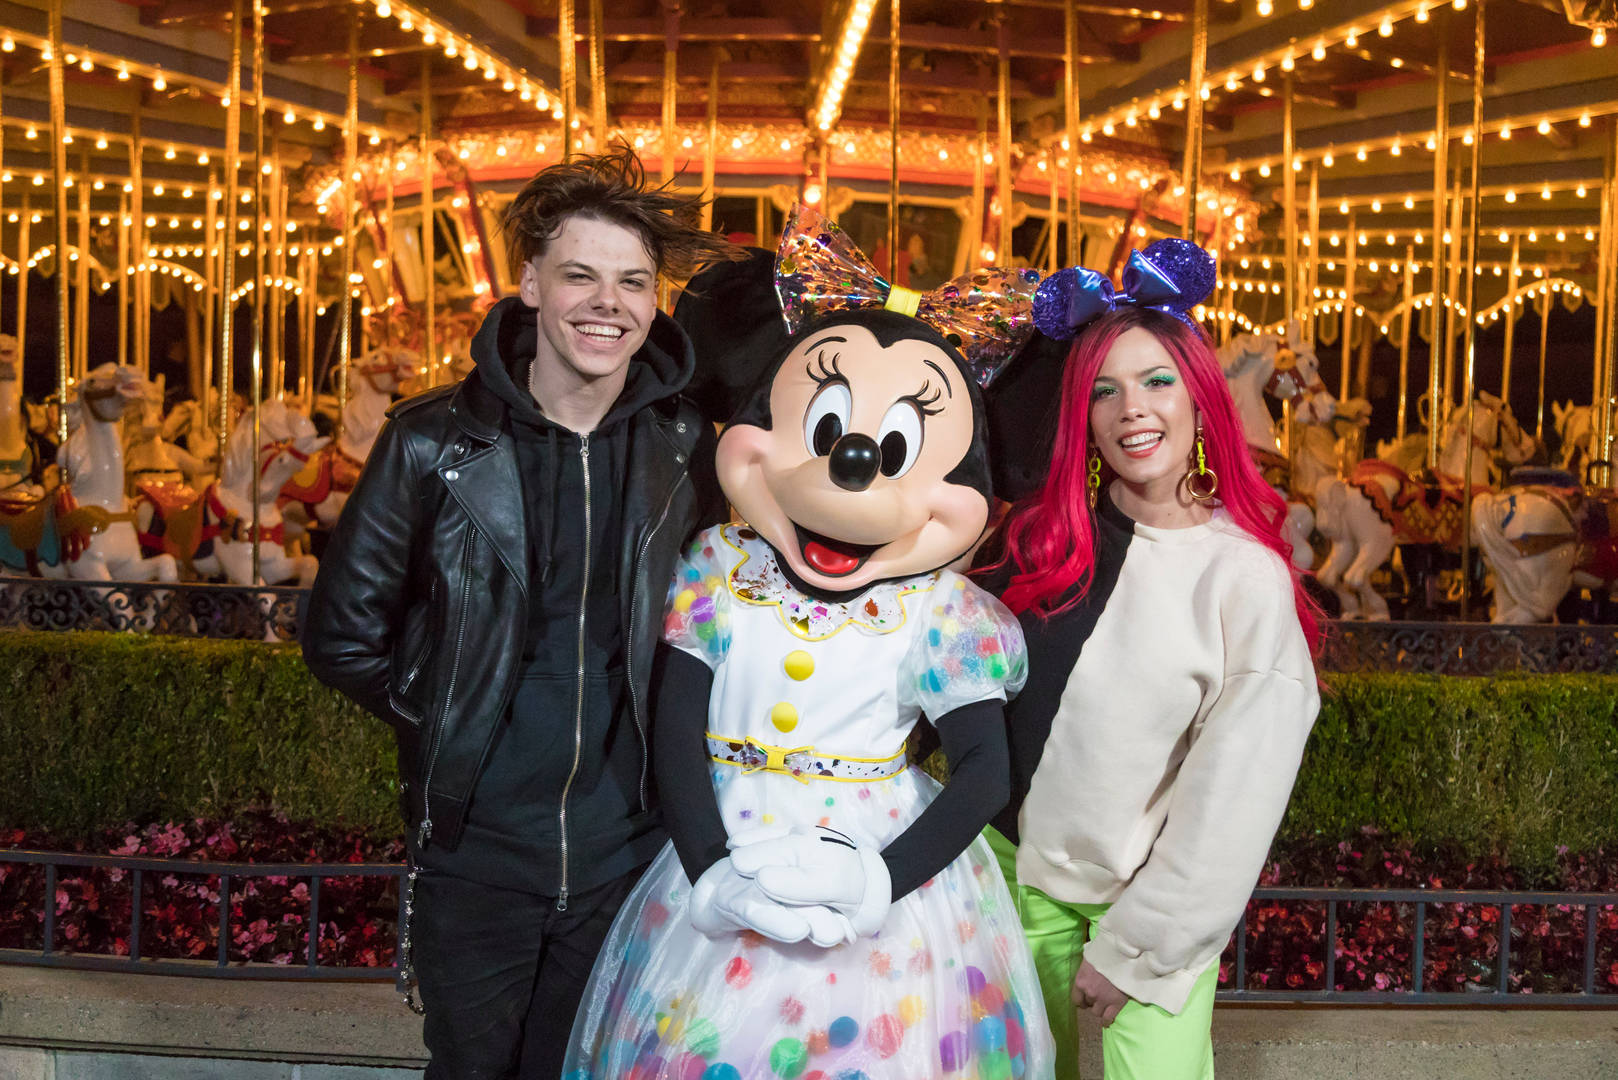 Halsey, Yungblud, Abuse, Drugs, Disneyland